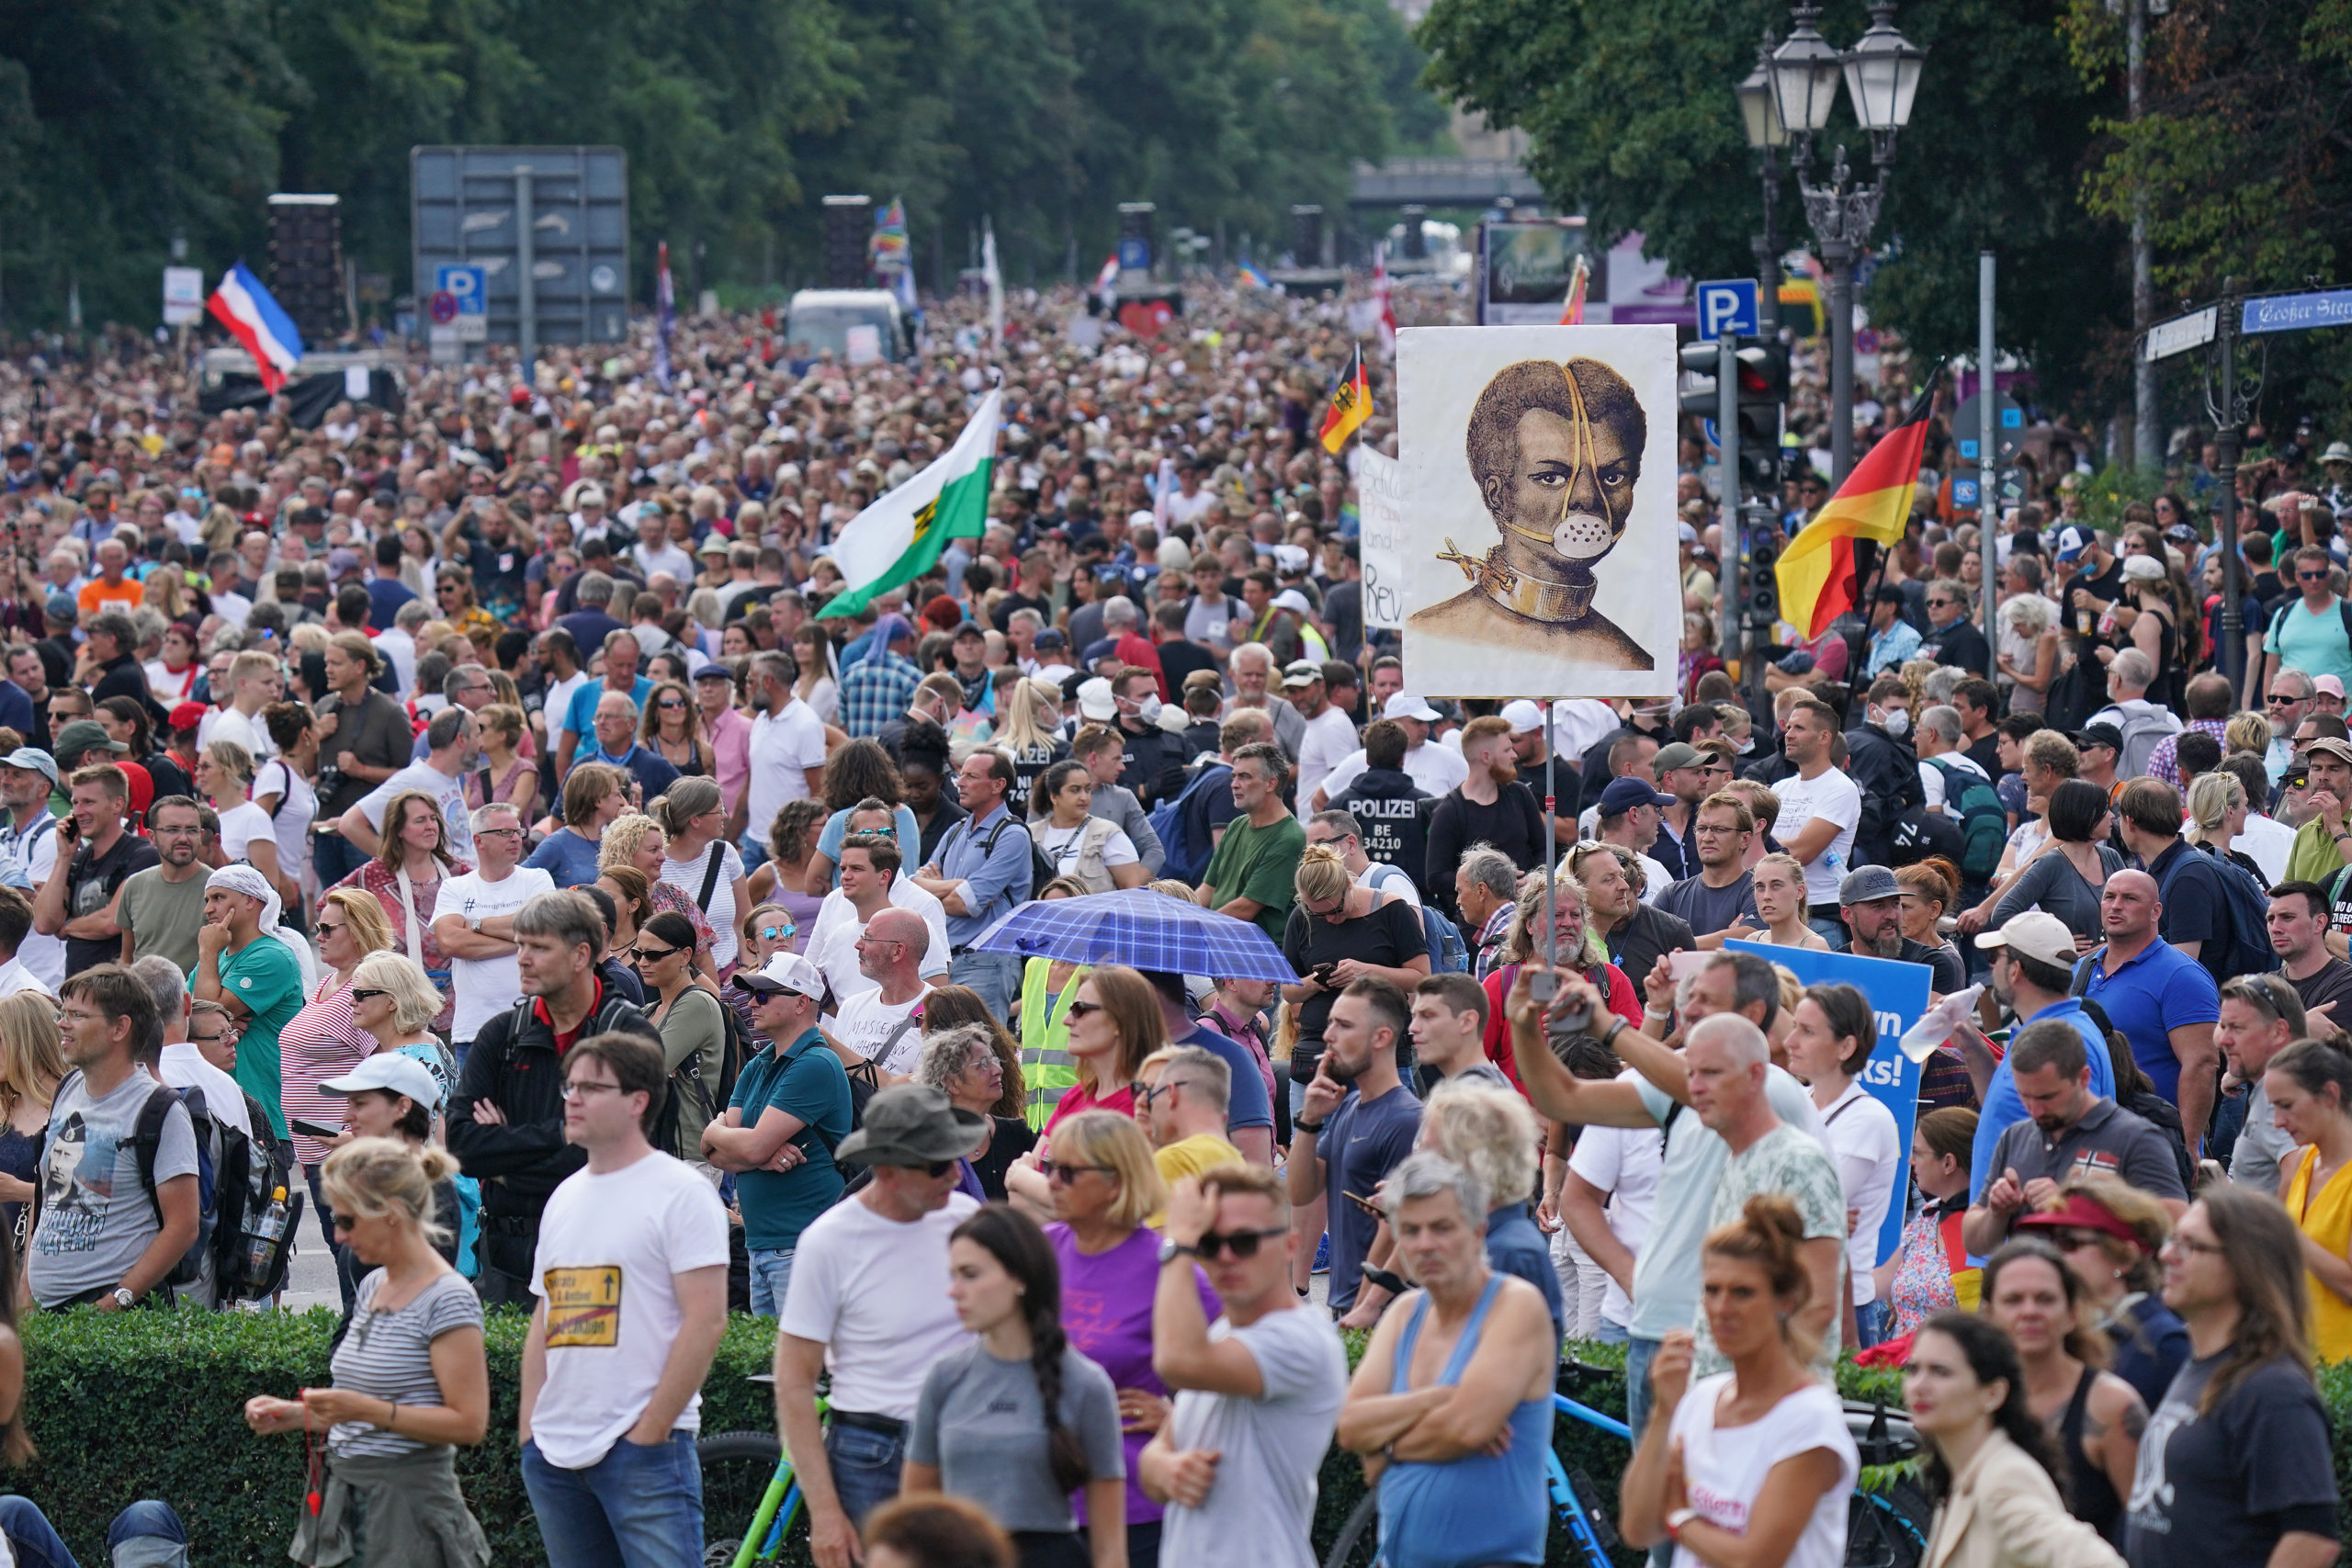 German citizens gathered during a protest against coronavirus-related restrictions and government policy on Aug. 29 in Berlin, Germany. (Sean Gallup/Getty Images)